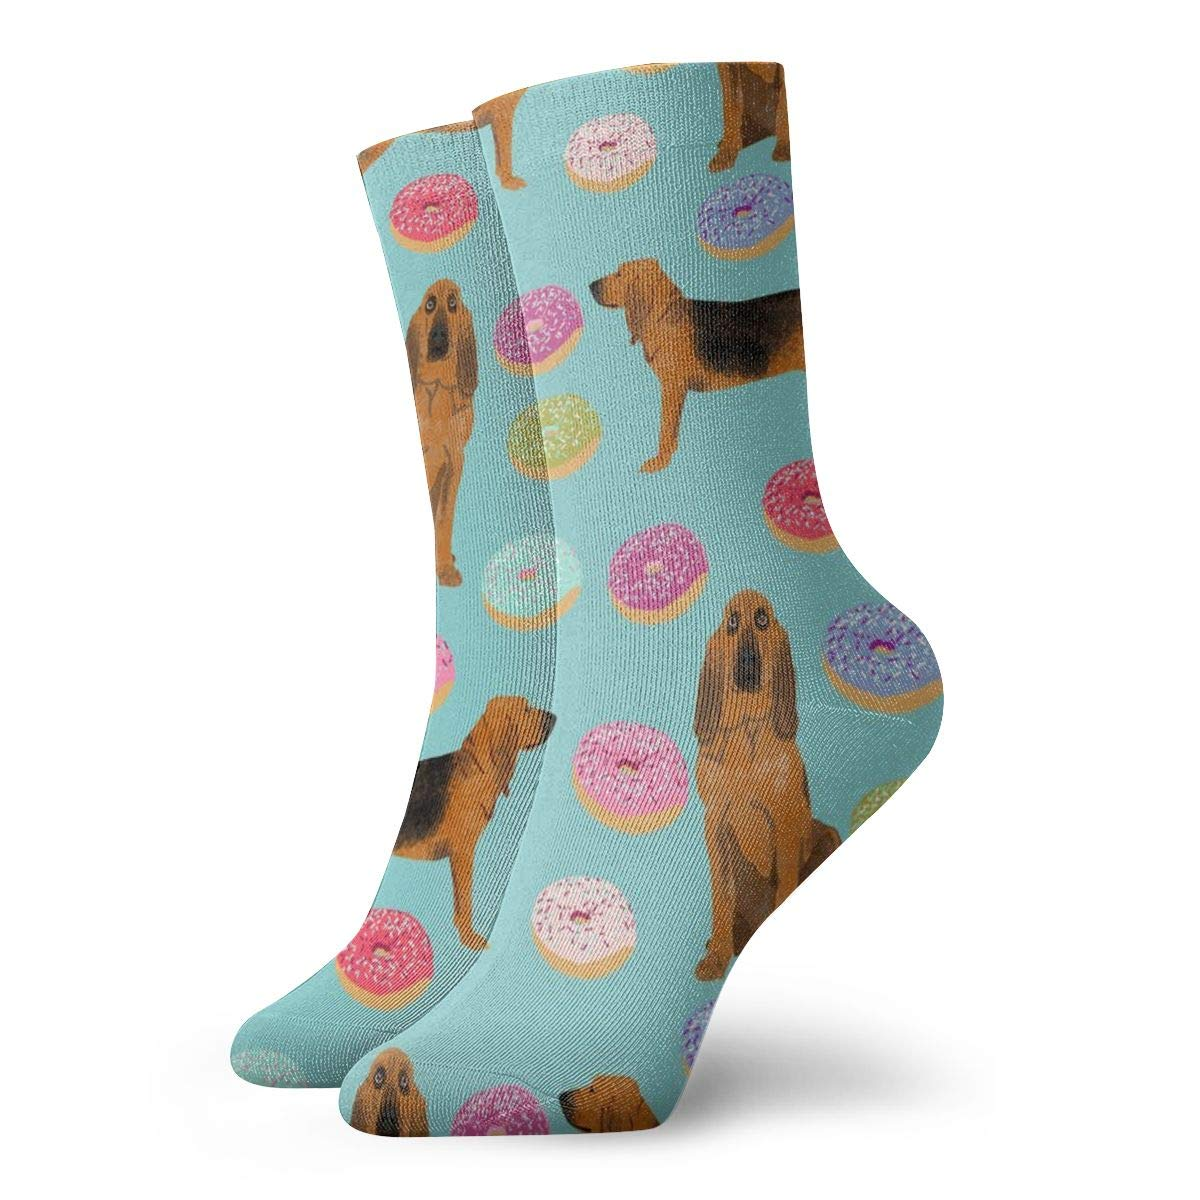 Bloodhound Dog Donuts Dog Donuts Bloodhound Dog Dog Pet Light Blue Men Women Thin High Ankle Cotton Moisture Wicking Casual Crew Socks 11.8 inch/30 cm